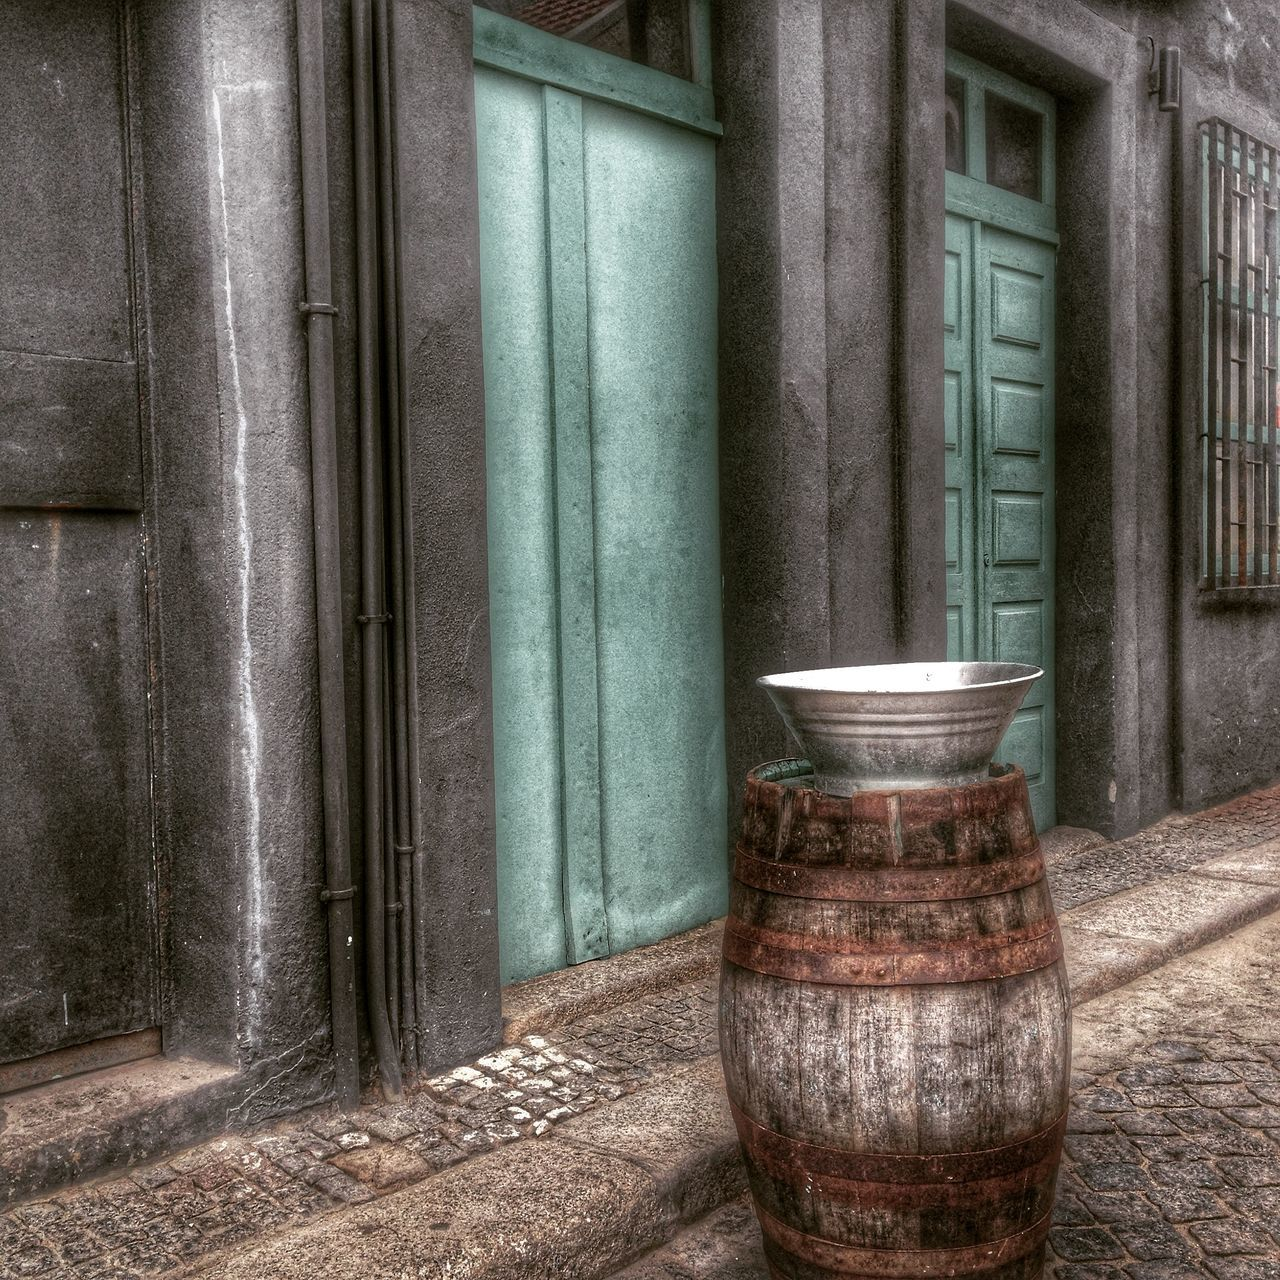 no people, day, barrel, architecture, window, built structure, outdoors, wine cask